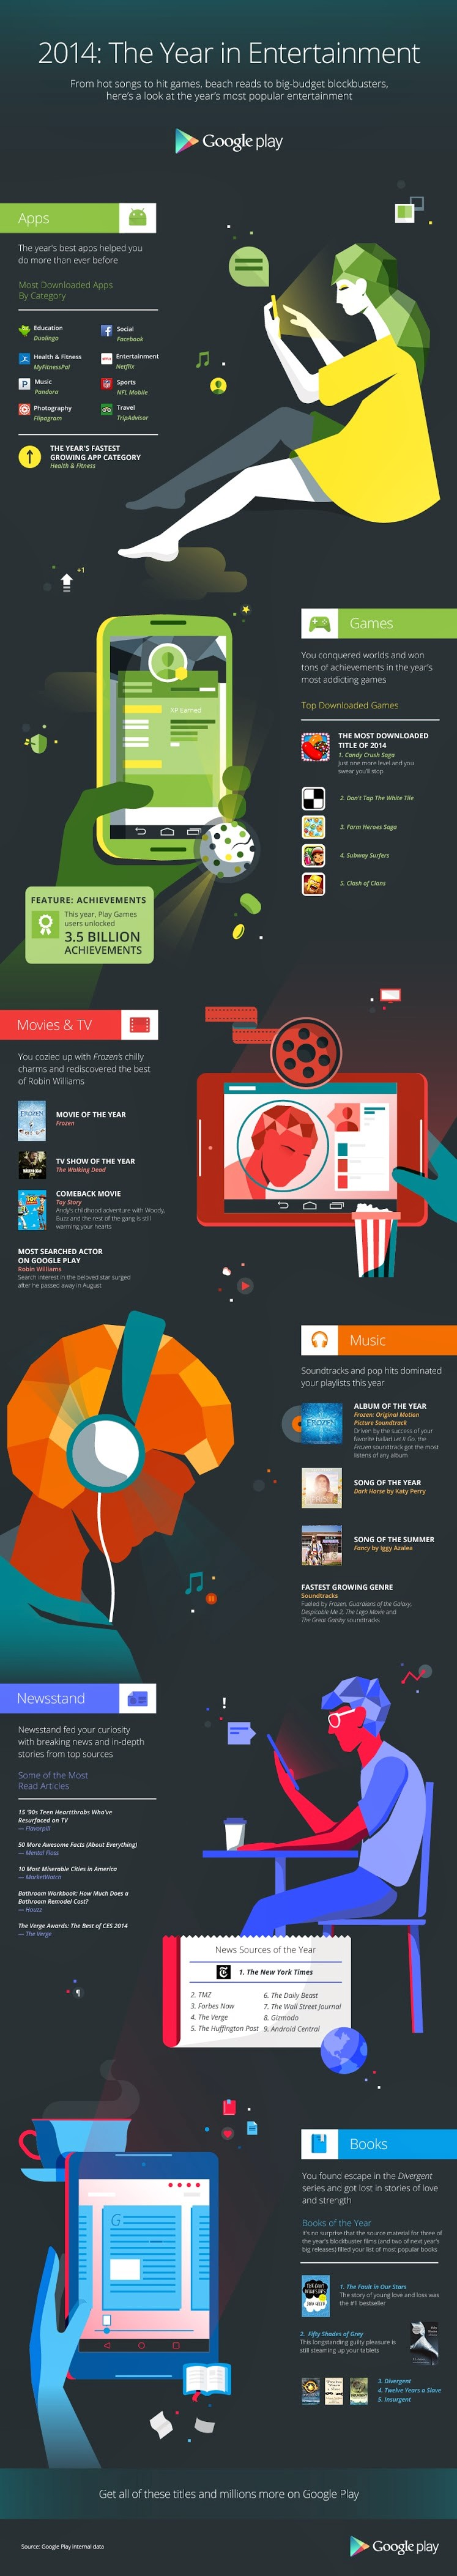 Google Play infographic